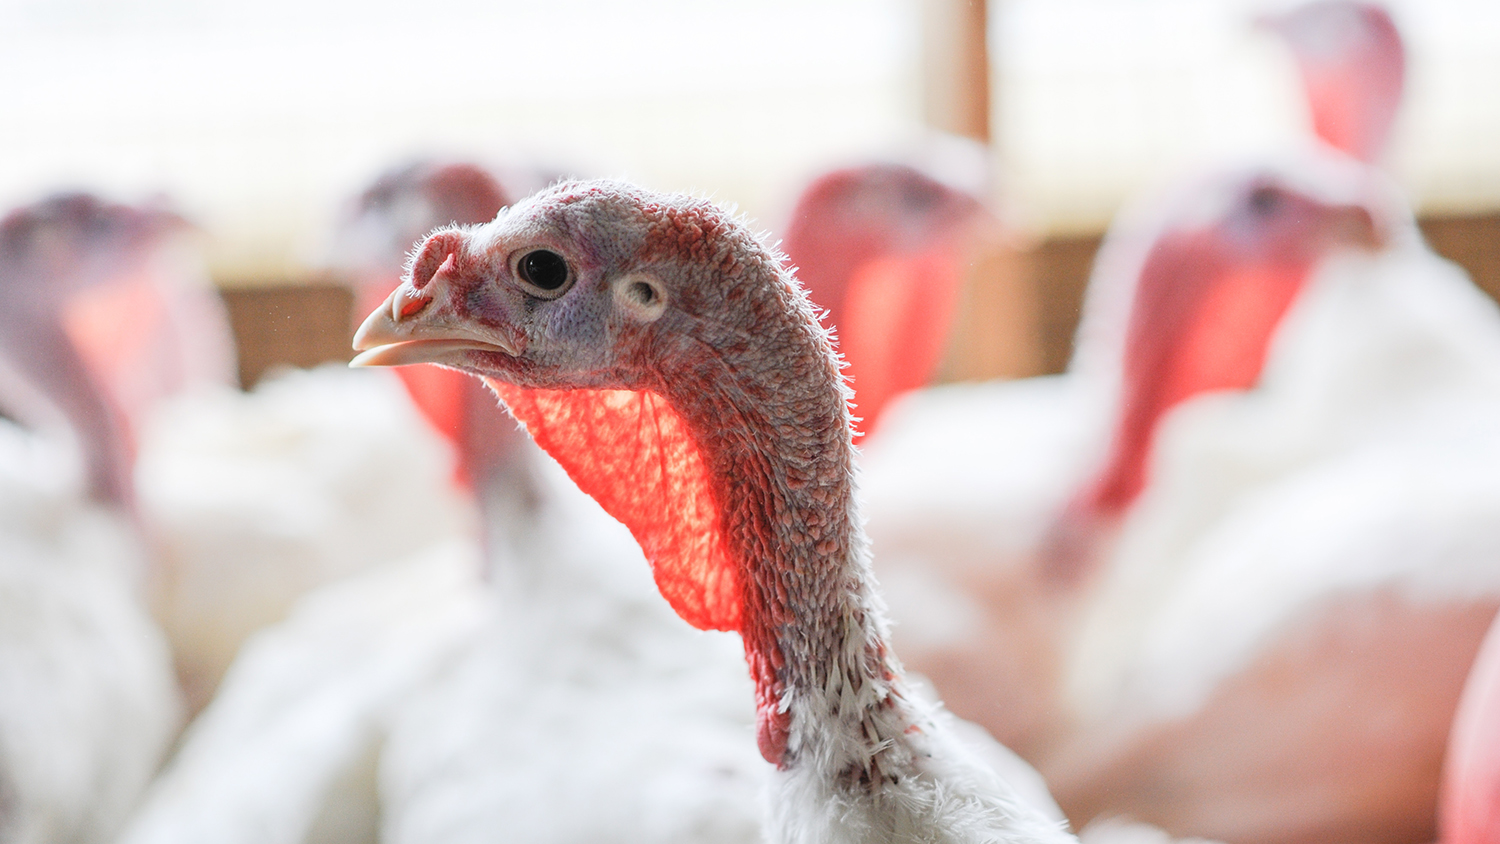 Close shot of a turkey in poulty building with white feathers.